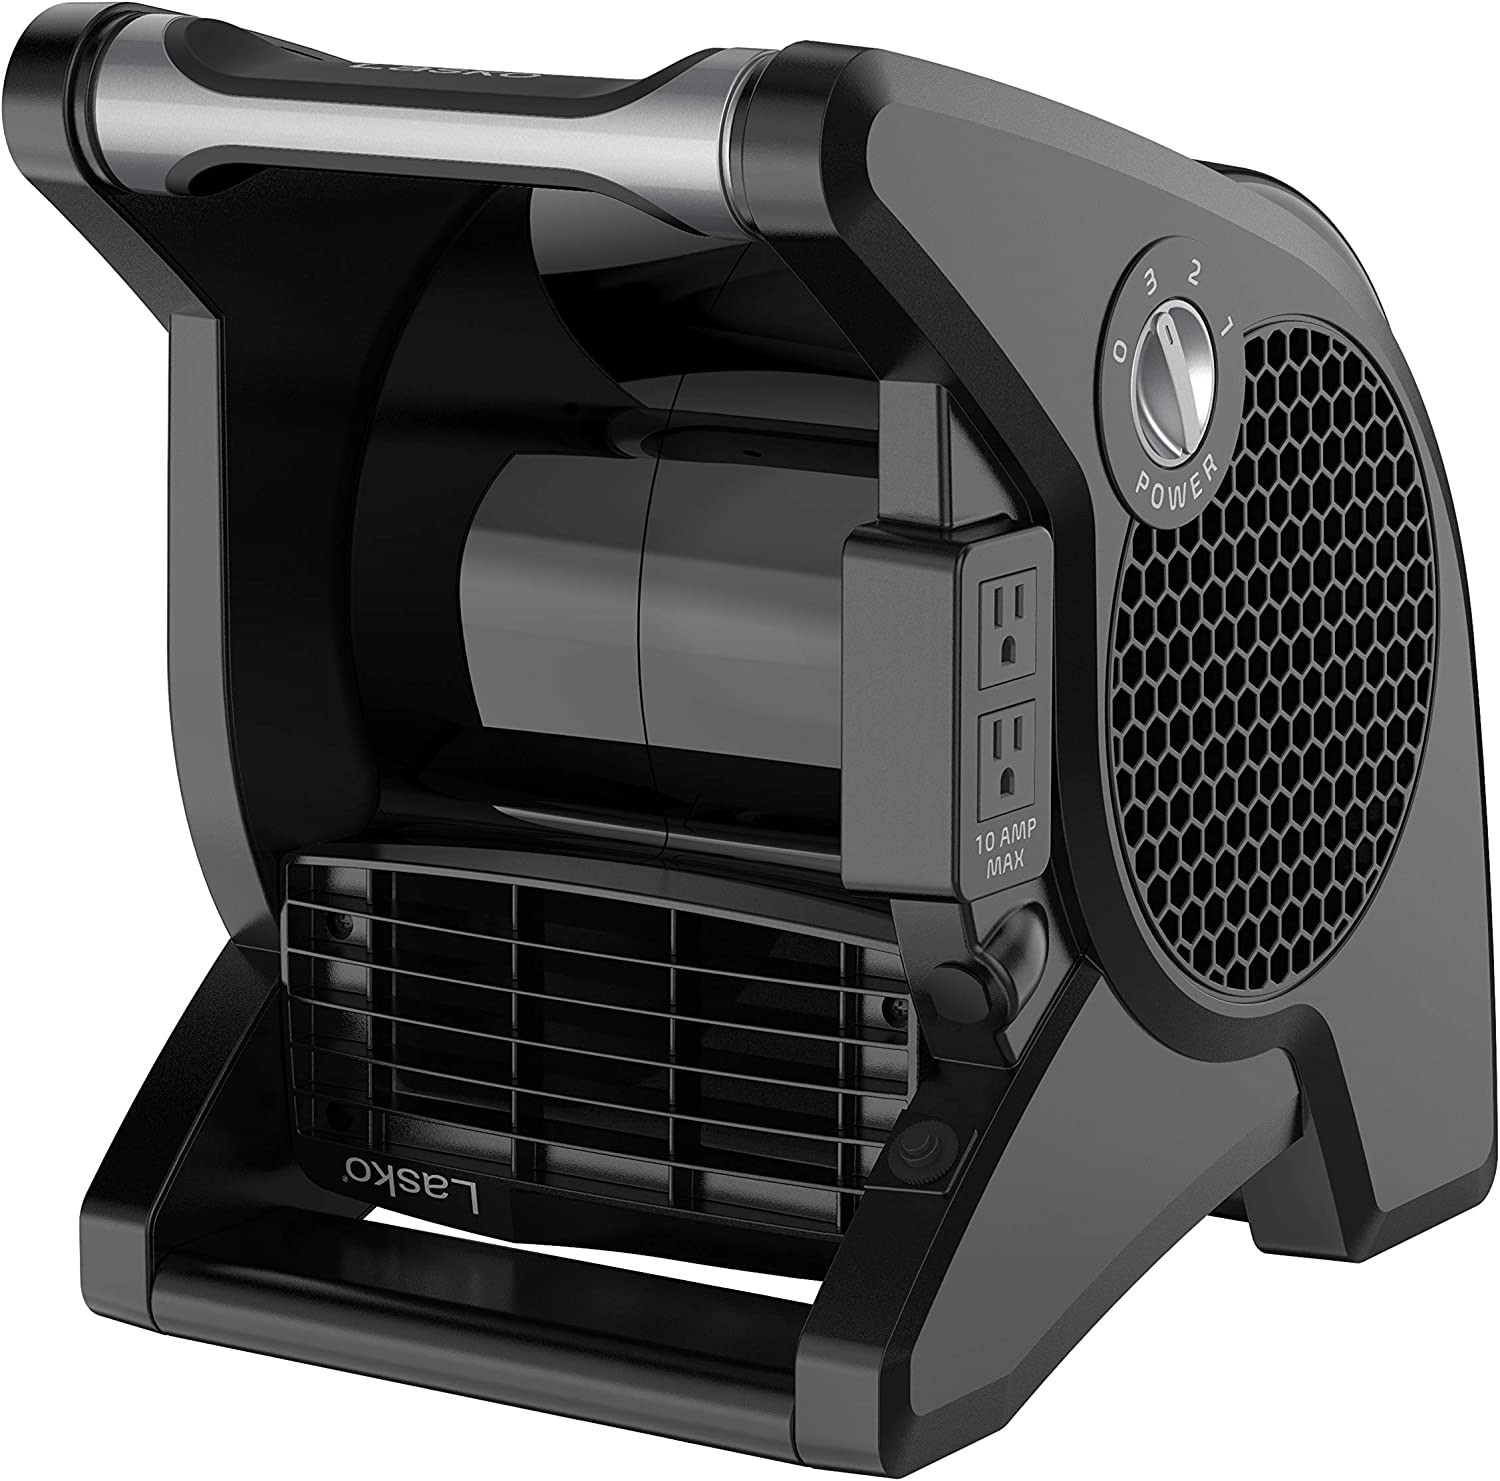 Lasko U12104 High Velocity Pro Pivoting Utility Fan for Cooling Ventilating Job Site and Work Shop Black 12104 Exhausting and Drying at Home